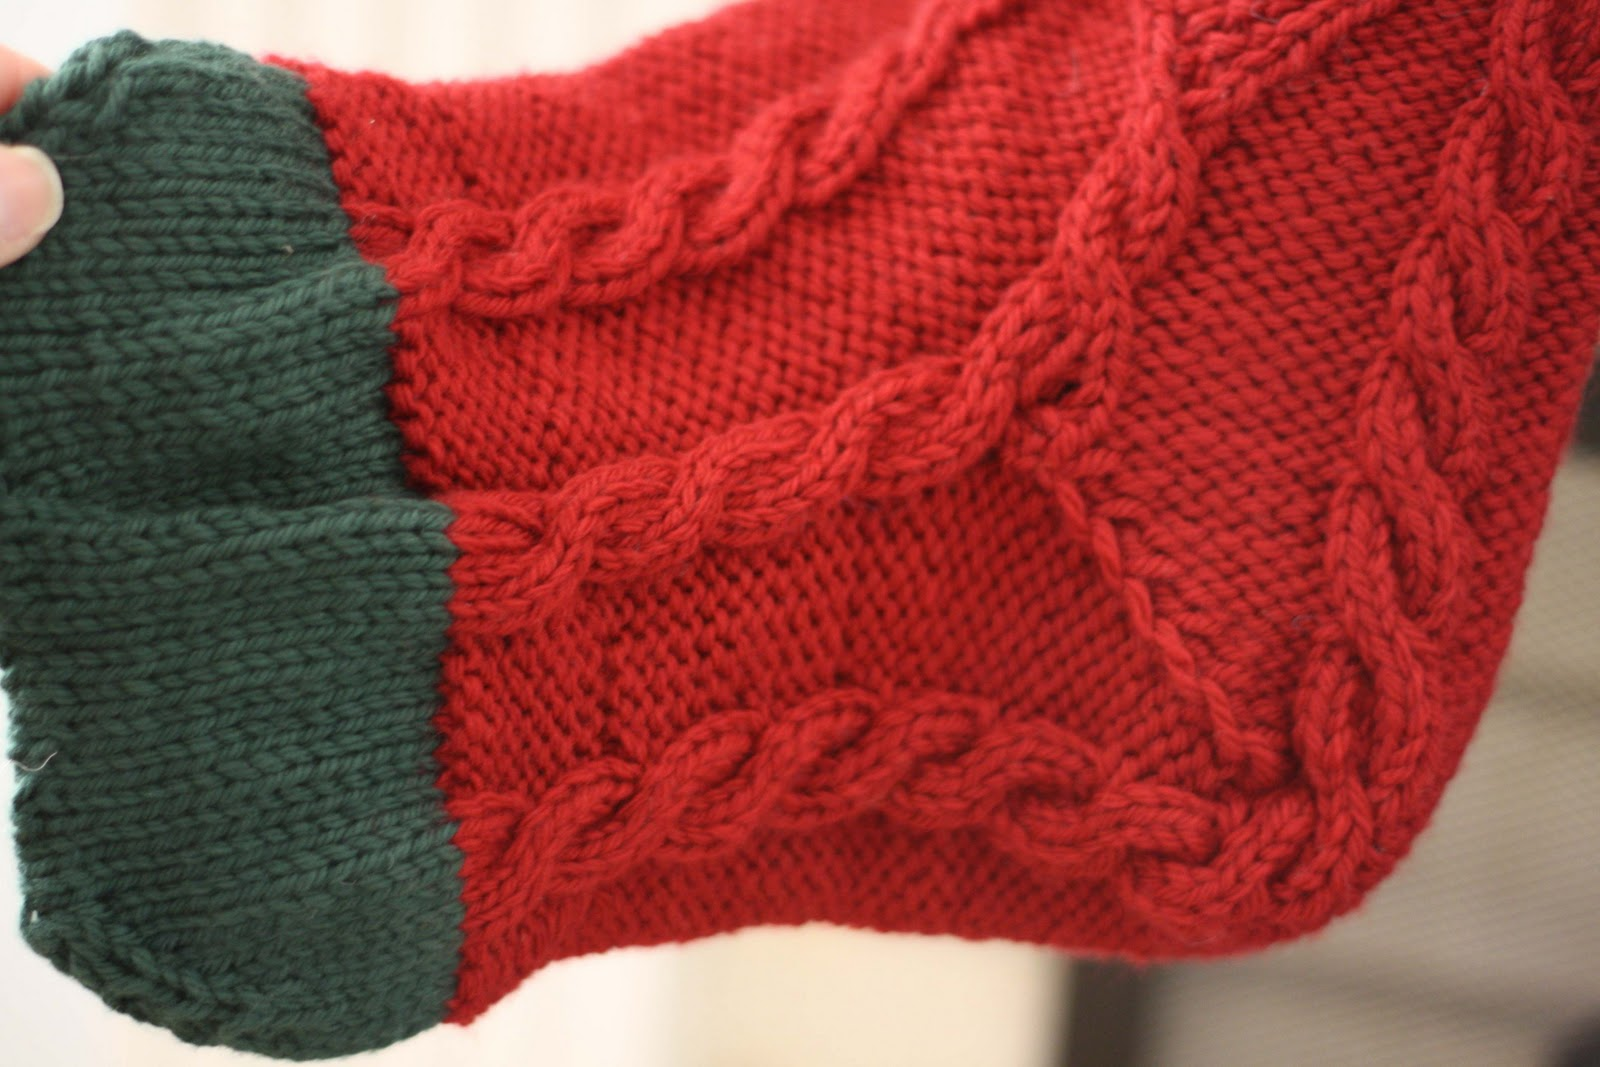 Knitted Christmas Stockings - Melly Sews